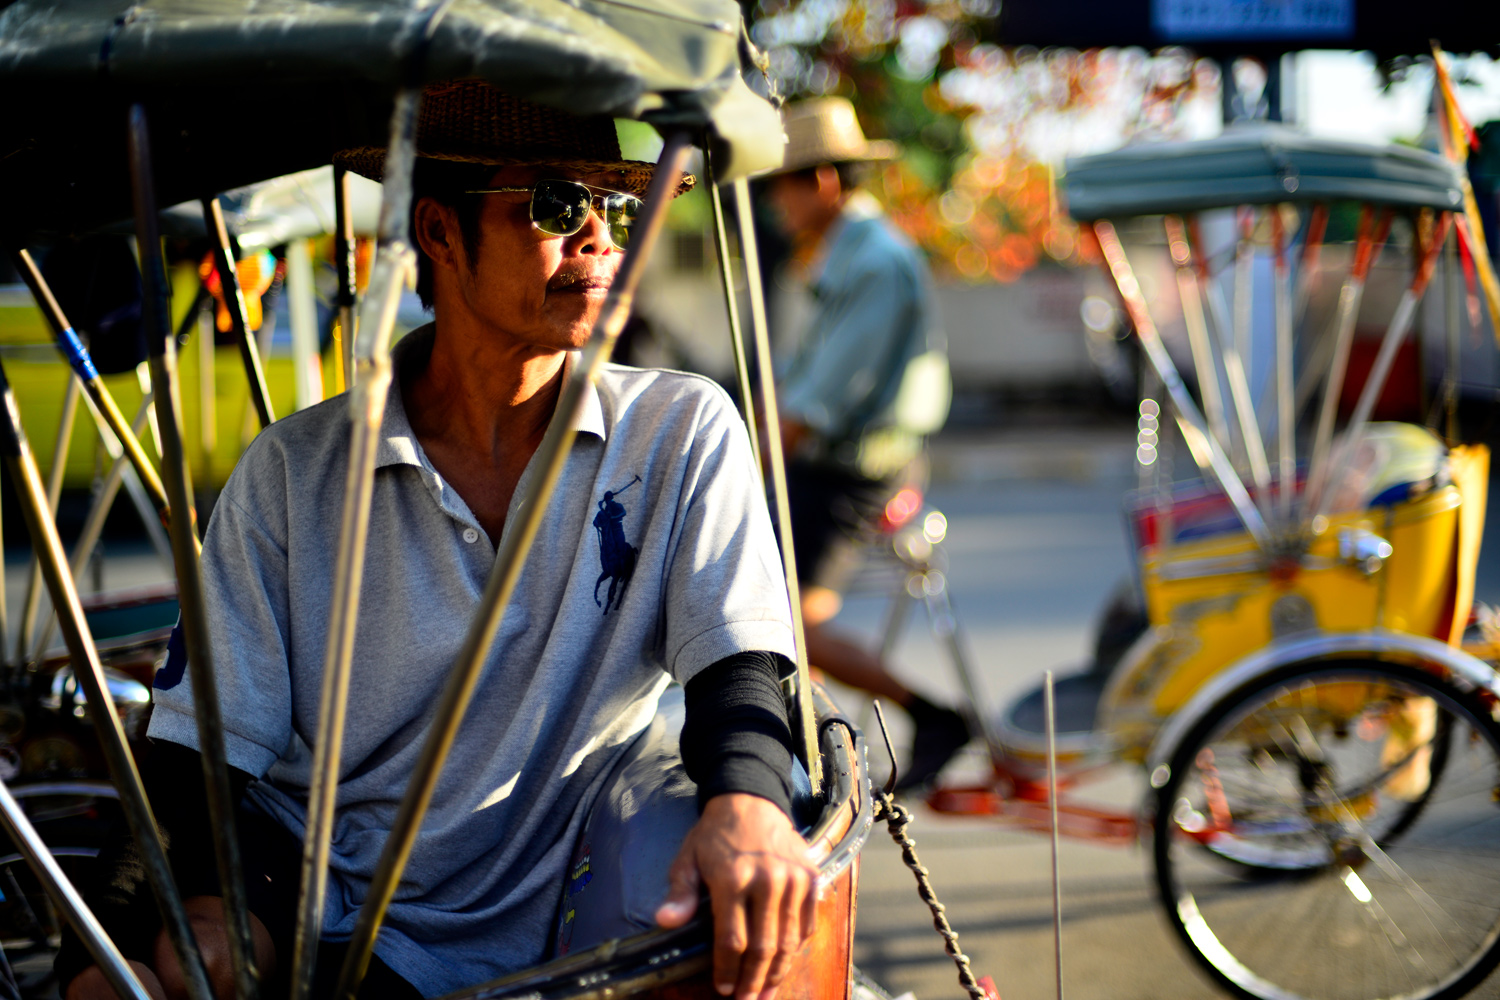 Tricycle Taxi in Chiang Mai Finding Your Strength In Isolation - 3 Methods To Make Your Subject Pop!